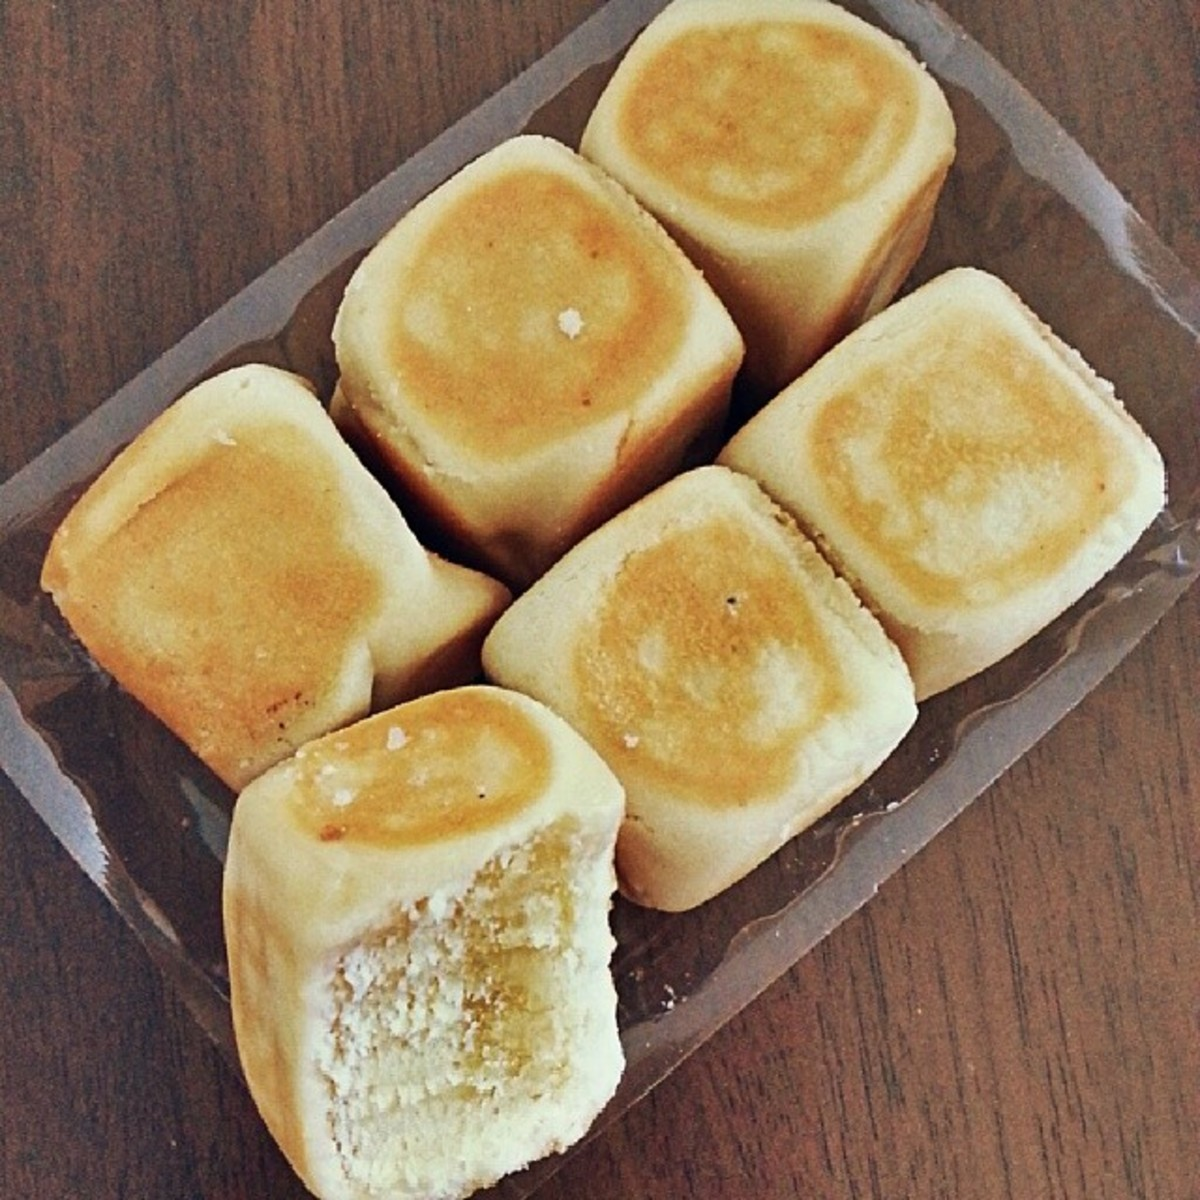 Dice-shaped hopia with mung bean paste filling